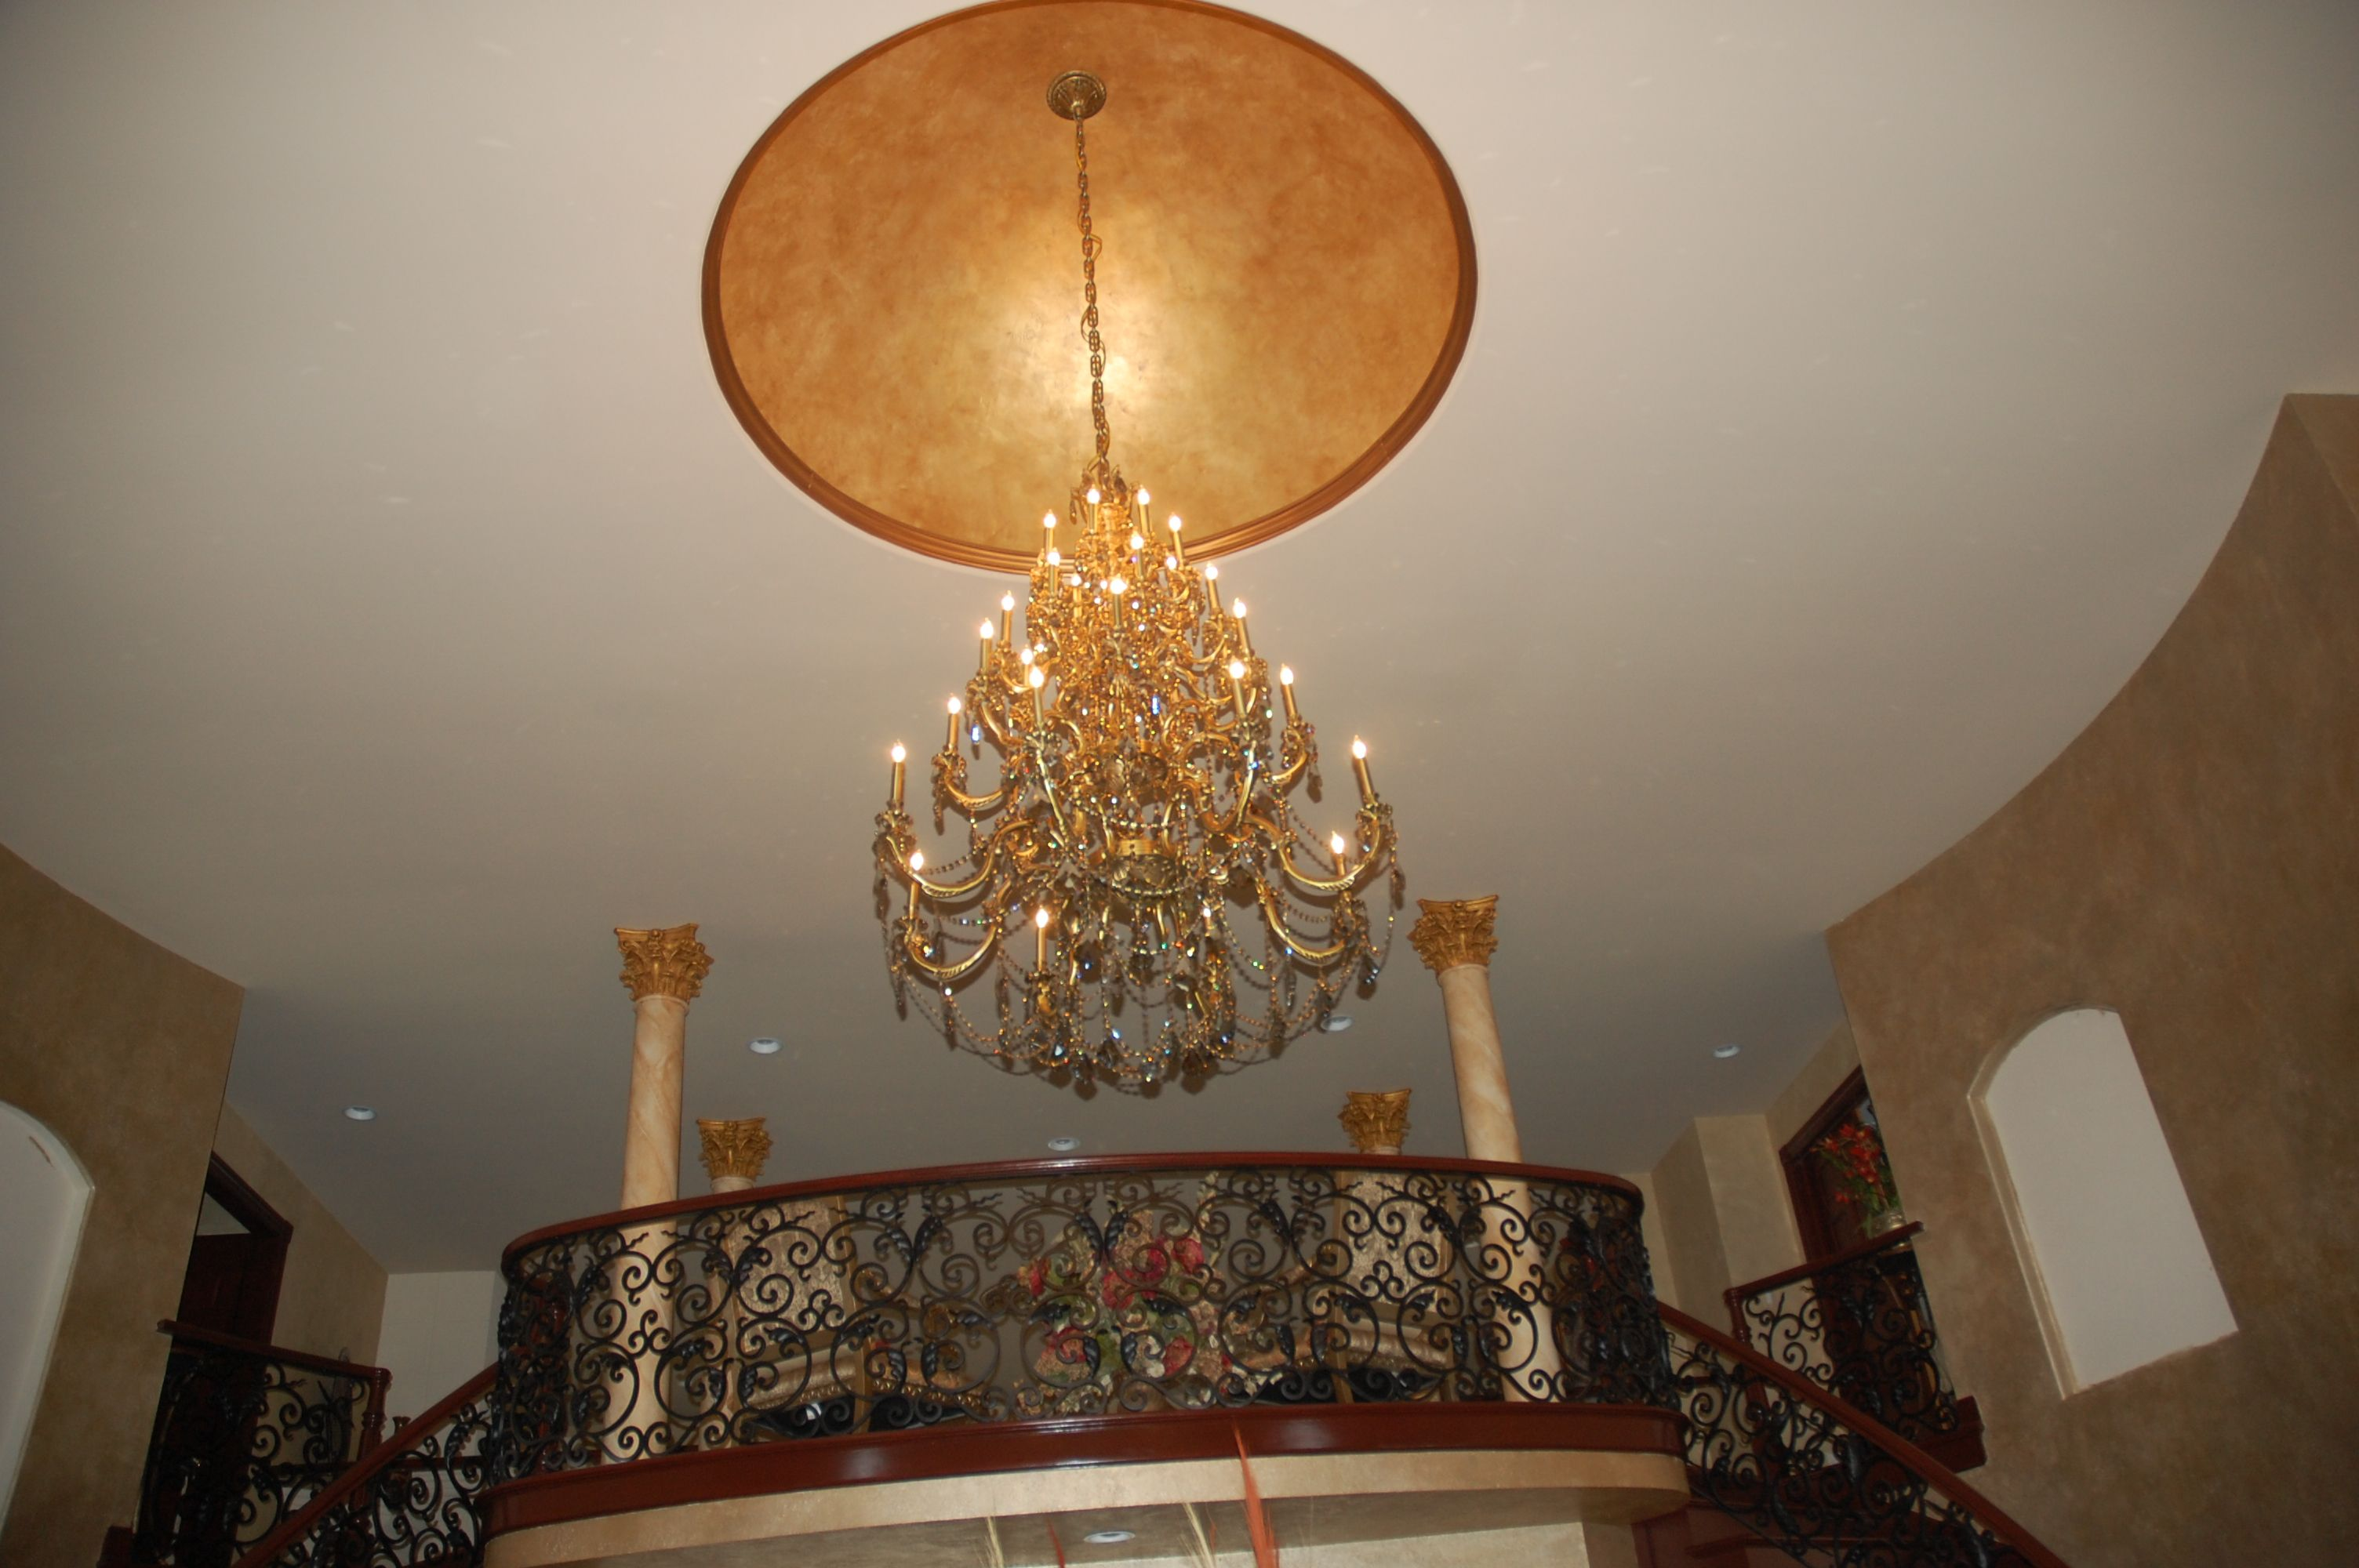 Dome ceiling faux painted with indirect lighting in the